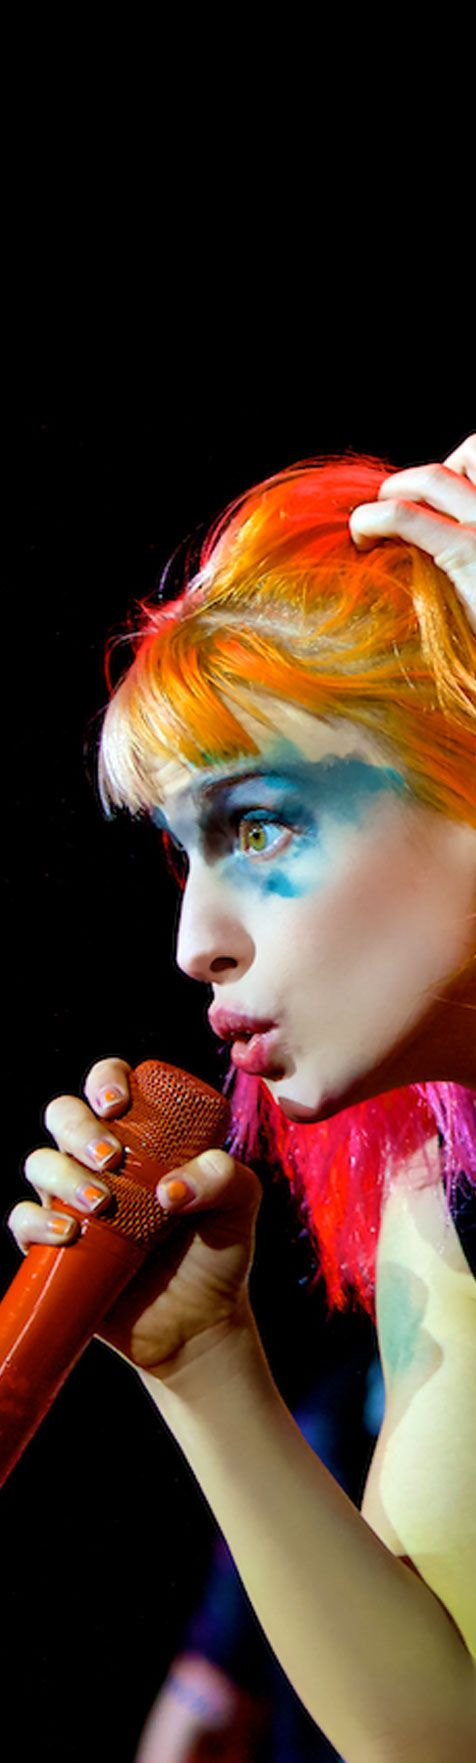 Haha this is such a cool photo of Hayley